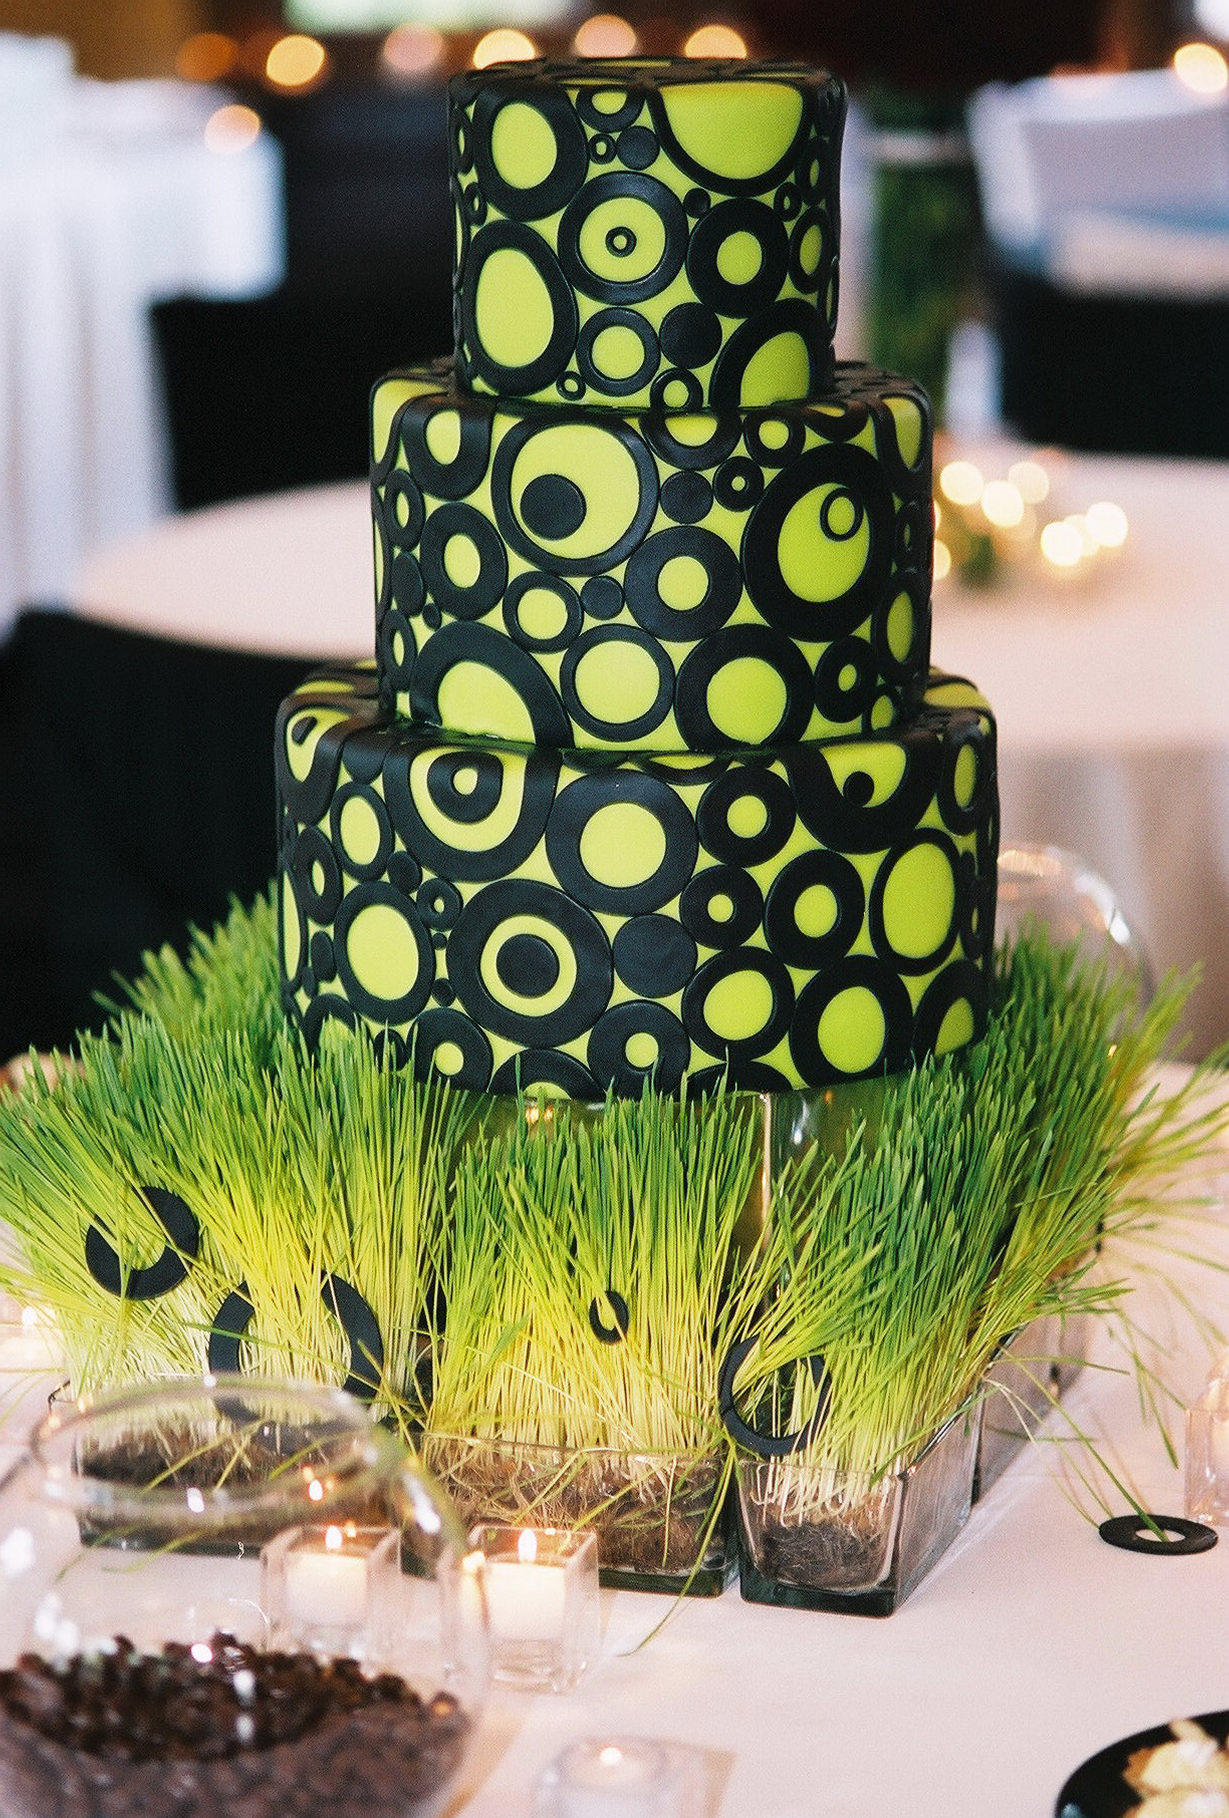 Lime Green and Black Cake from Gateaux